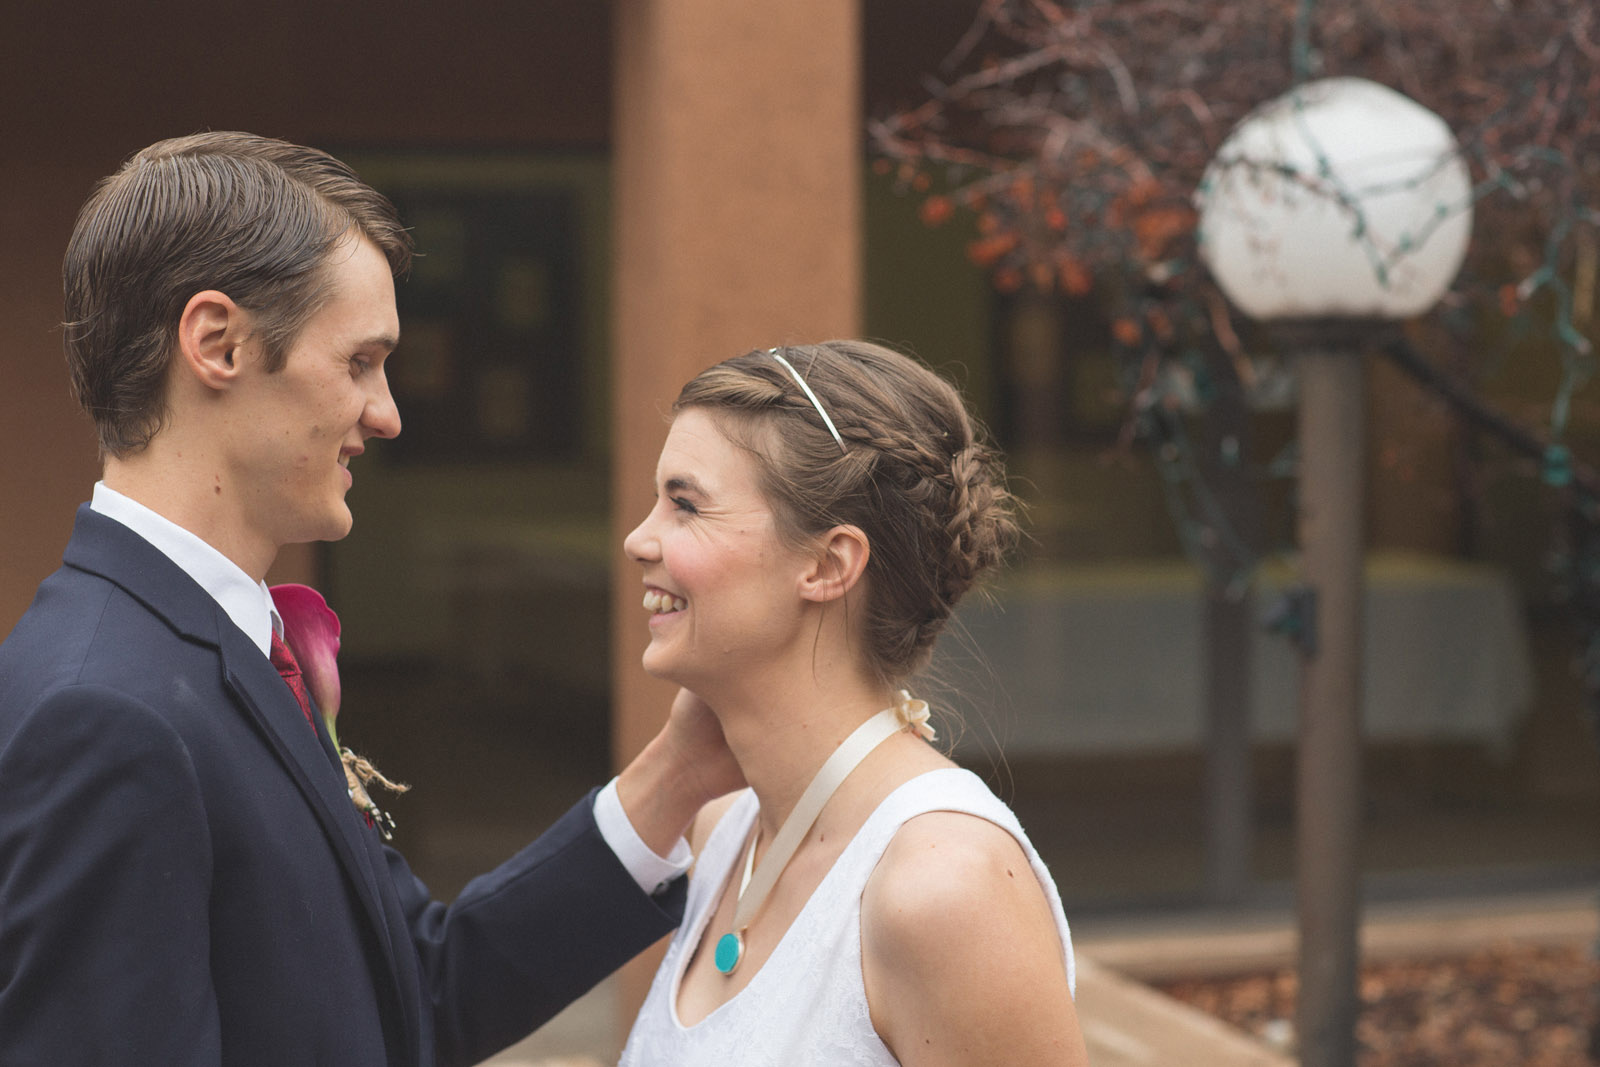 052-bride-and-groom-see-eachother-in-first-look-in-courtyard-before-the-ceremony-in-albuquerque-nm